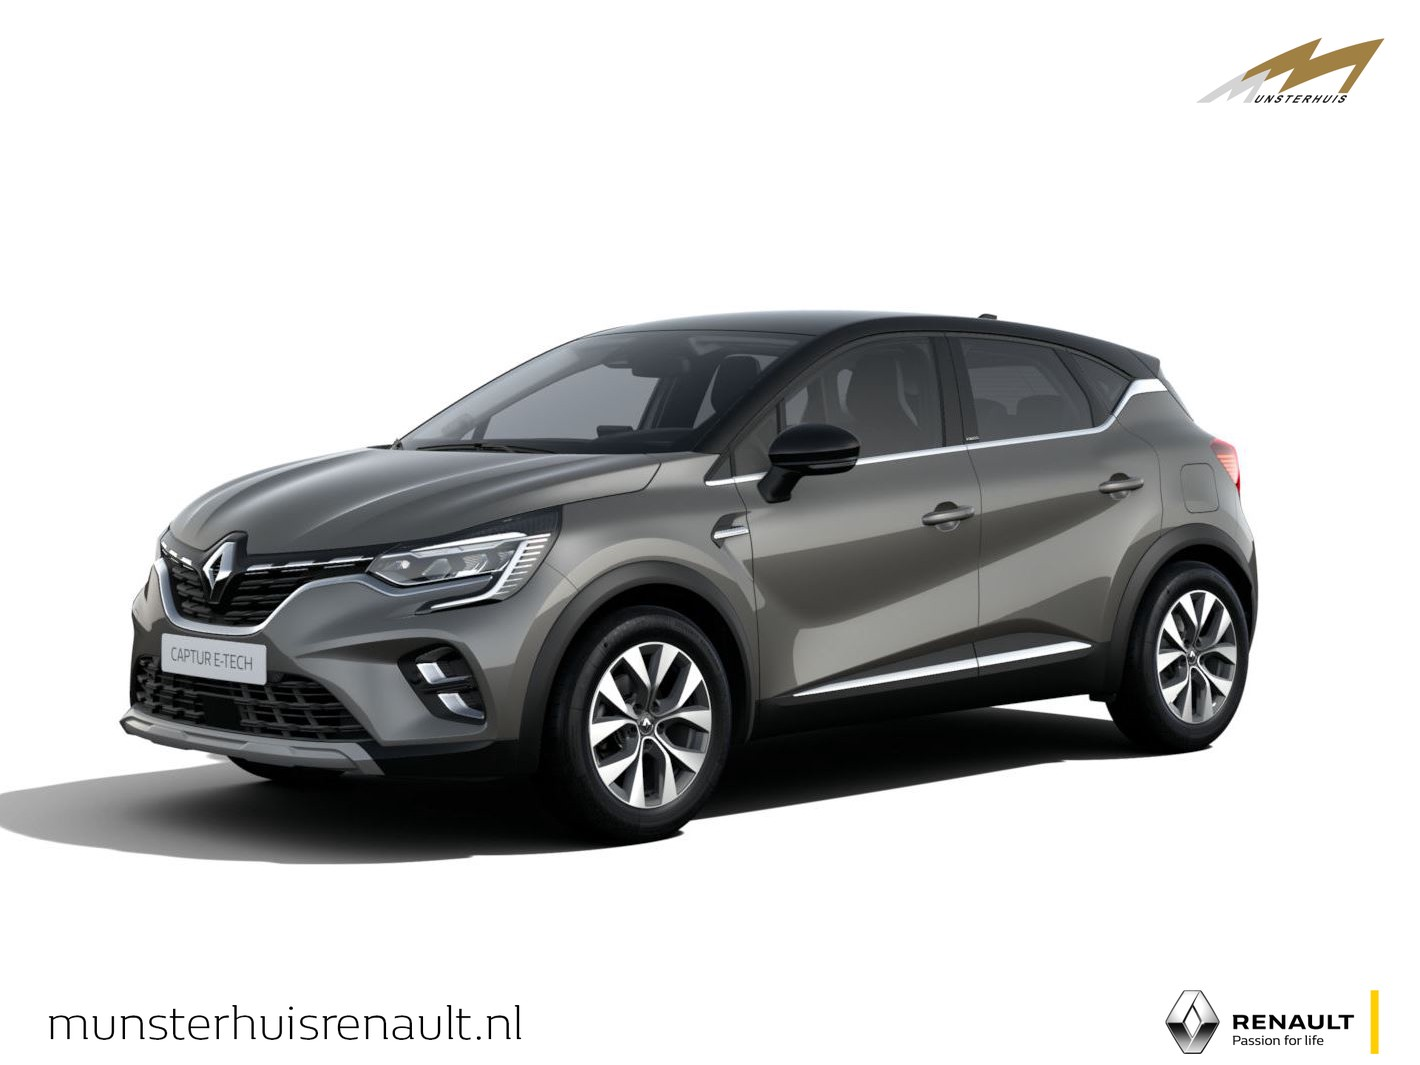 Renault Captur Plug-in hybrid 160 intens - nieuw - hybride model